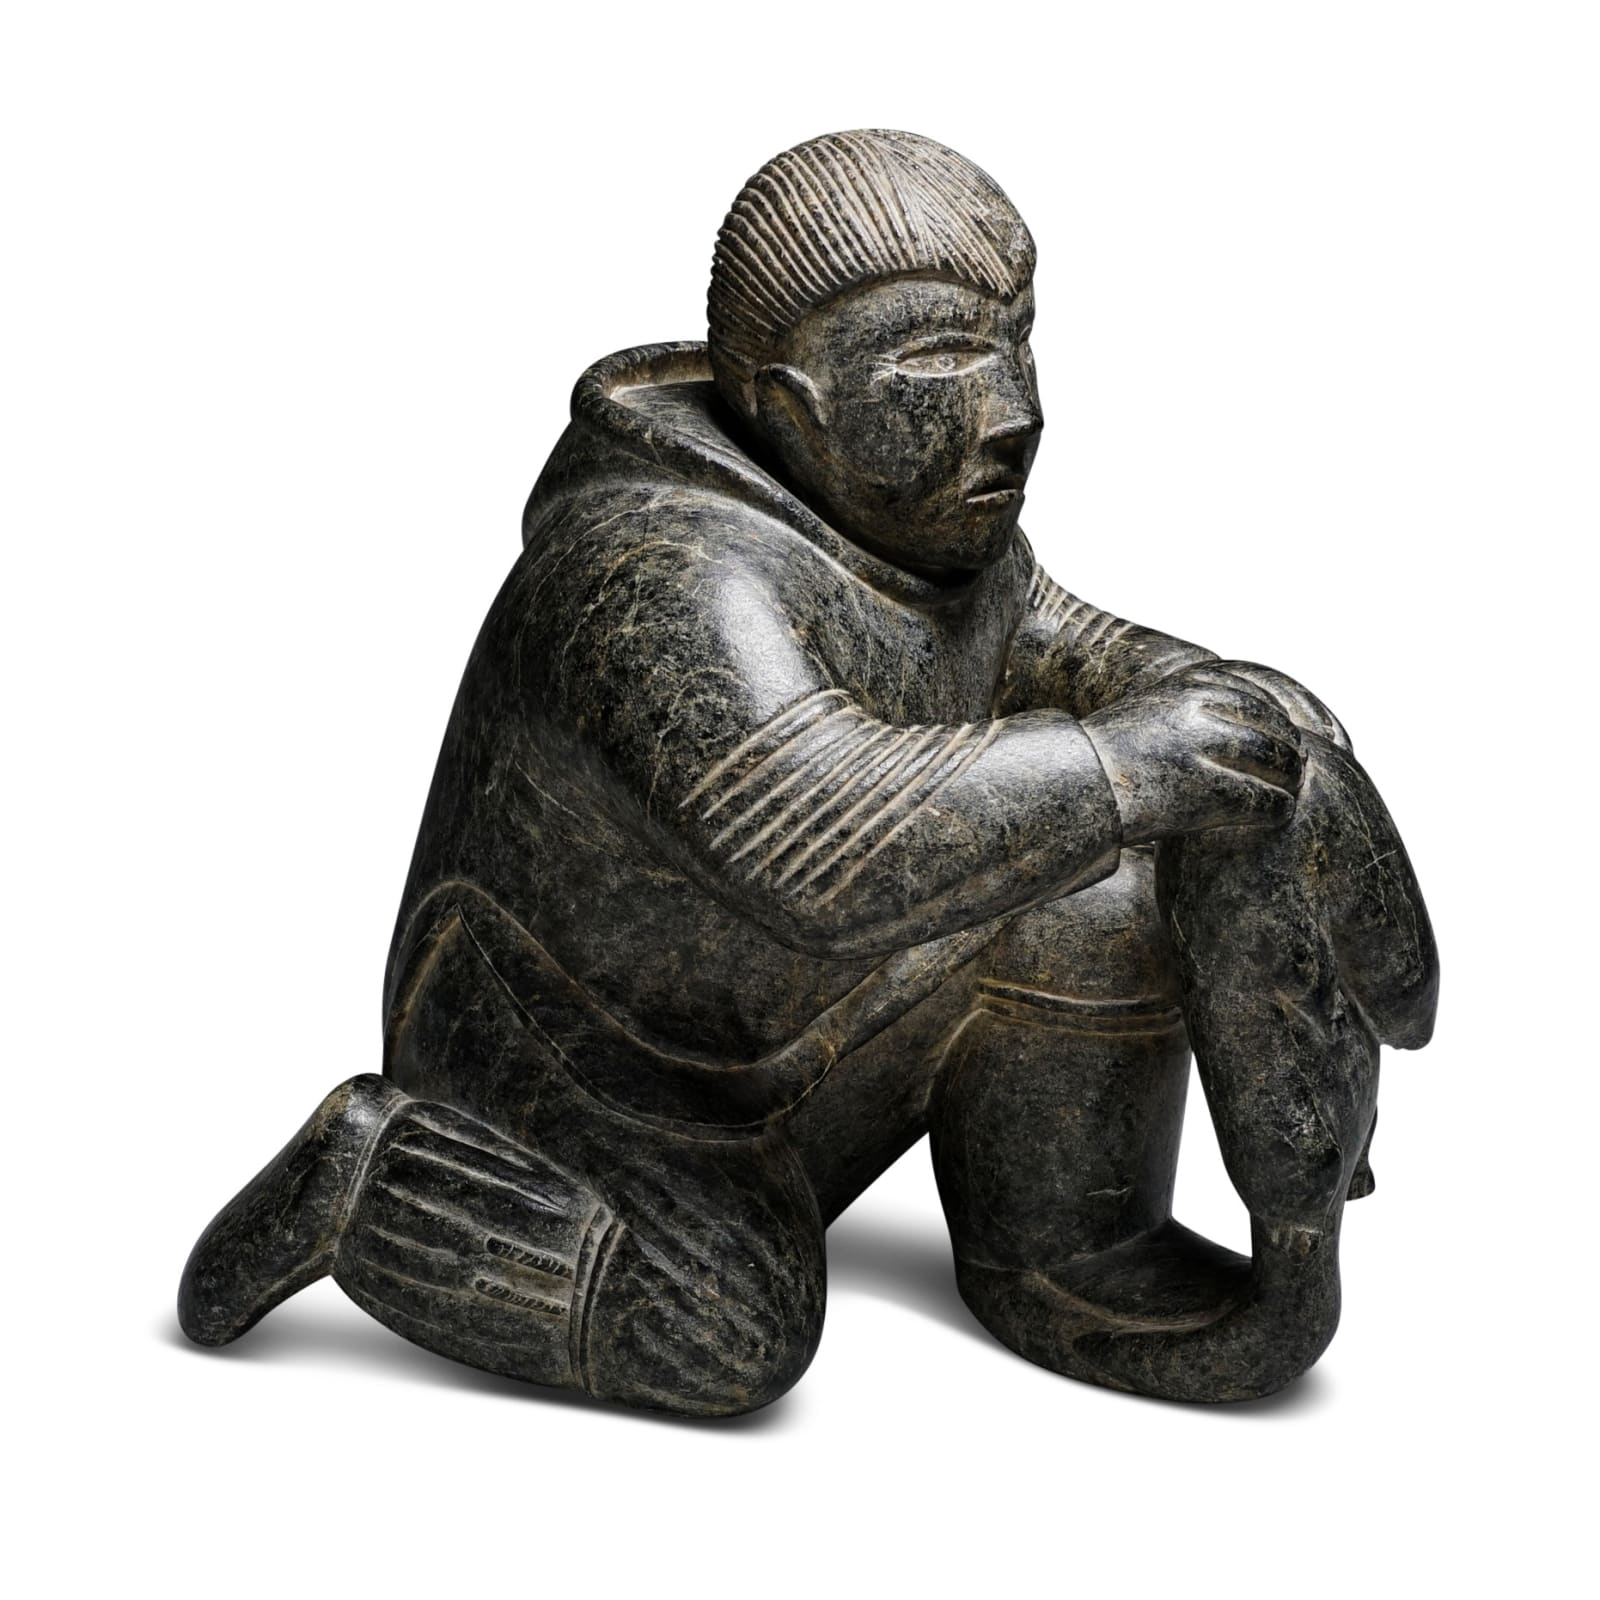 LOT 5  TIMOTHY QUANANAAPIK (1938-1984) PUVIRNITUQ (POVUNGNITUK)  Hunter with Lemming, 1957  stone, 9 x 8 1/2 x 5 in (22.9 x 21.6 x 12.7 cm)  ESTIMATE: $3,500 — $5,000  PRICE REALIZED: $4,500